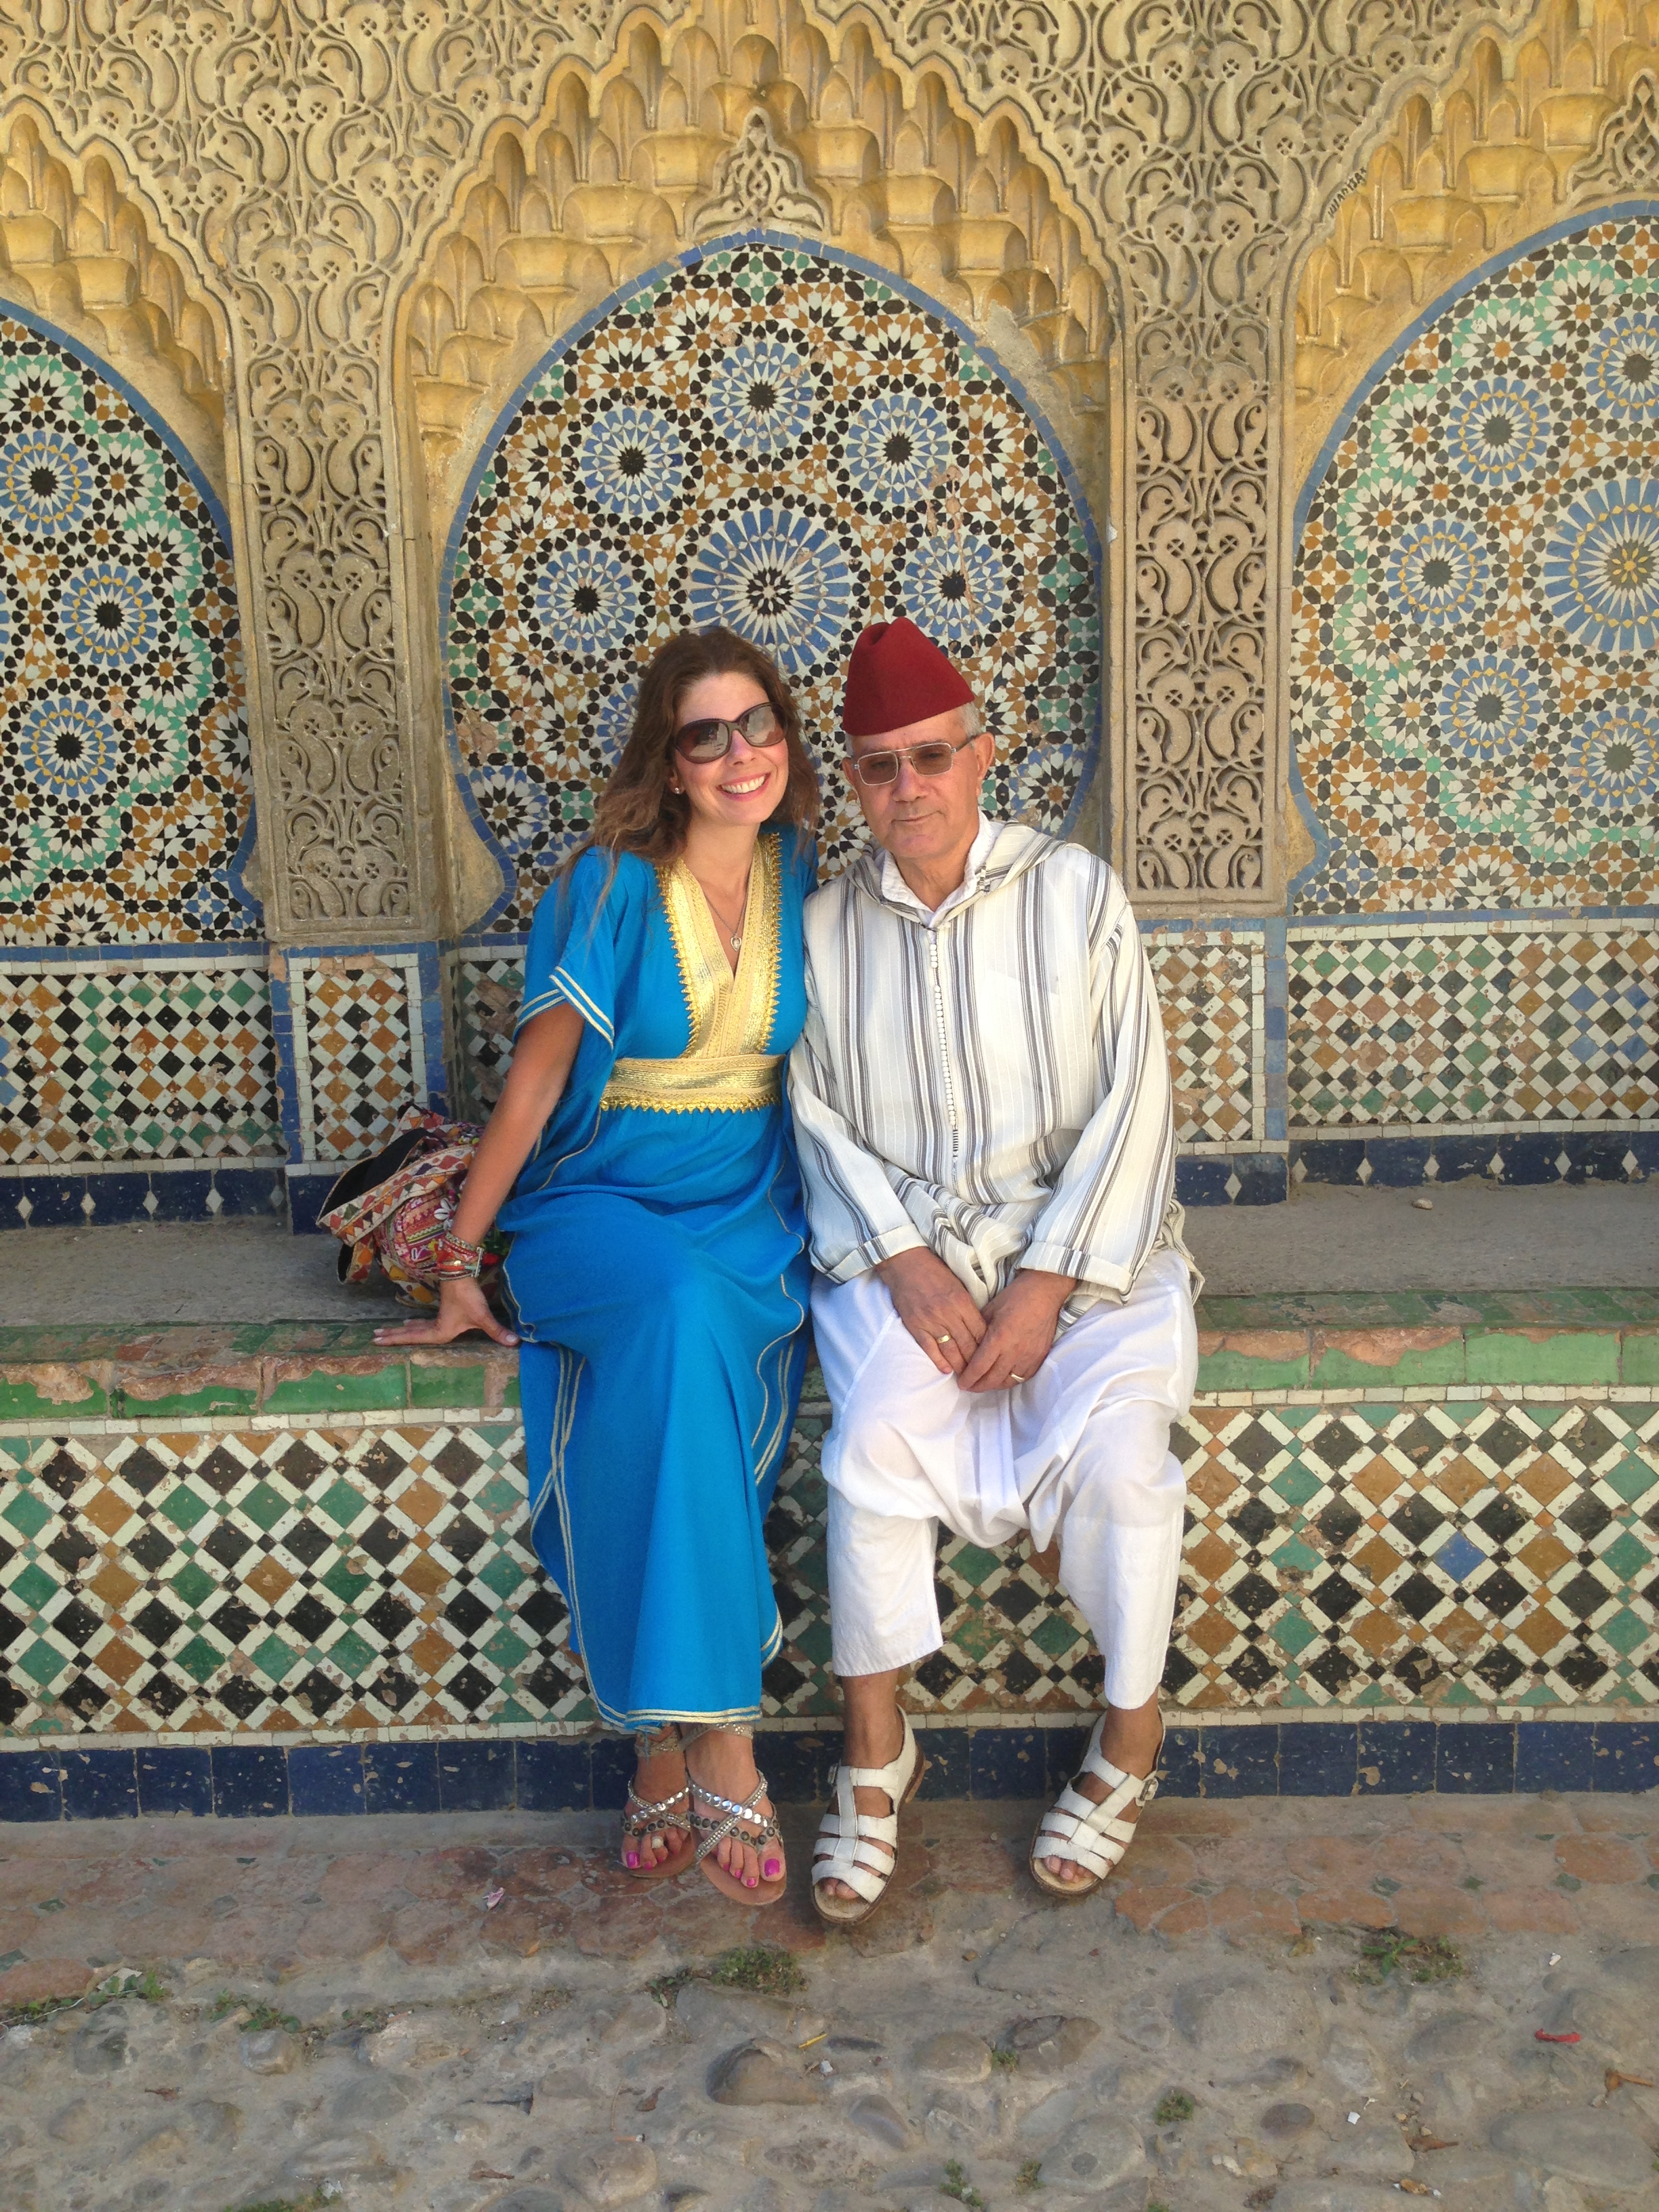 Me and our amazing guide, Tifo, taking a break in the Kasbah.